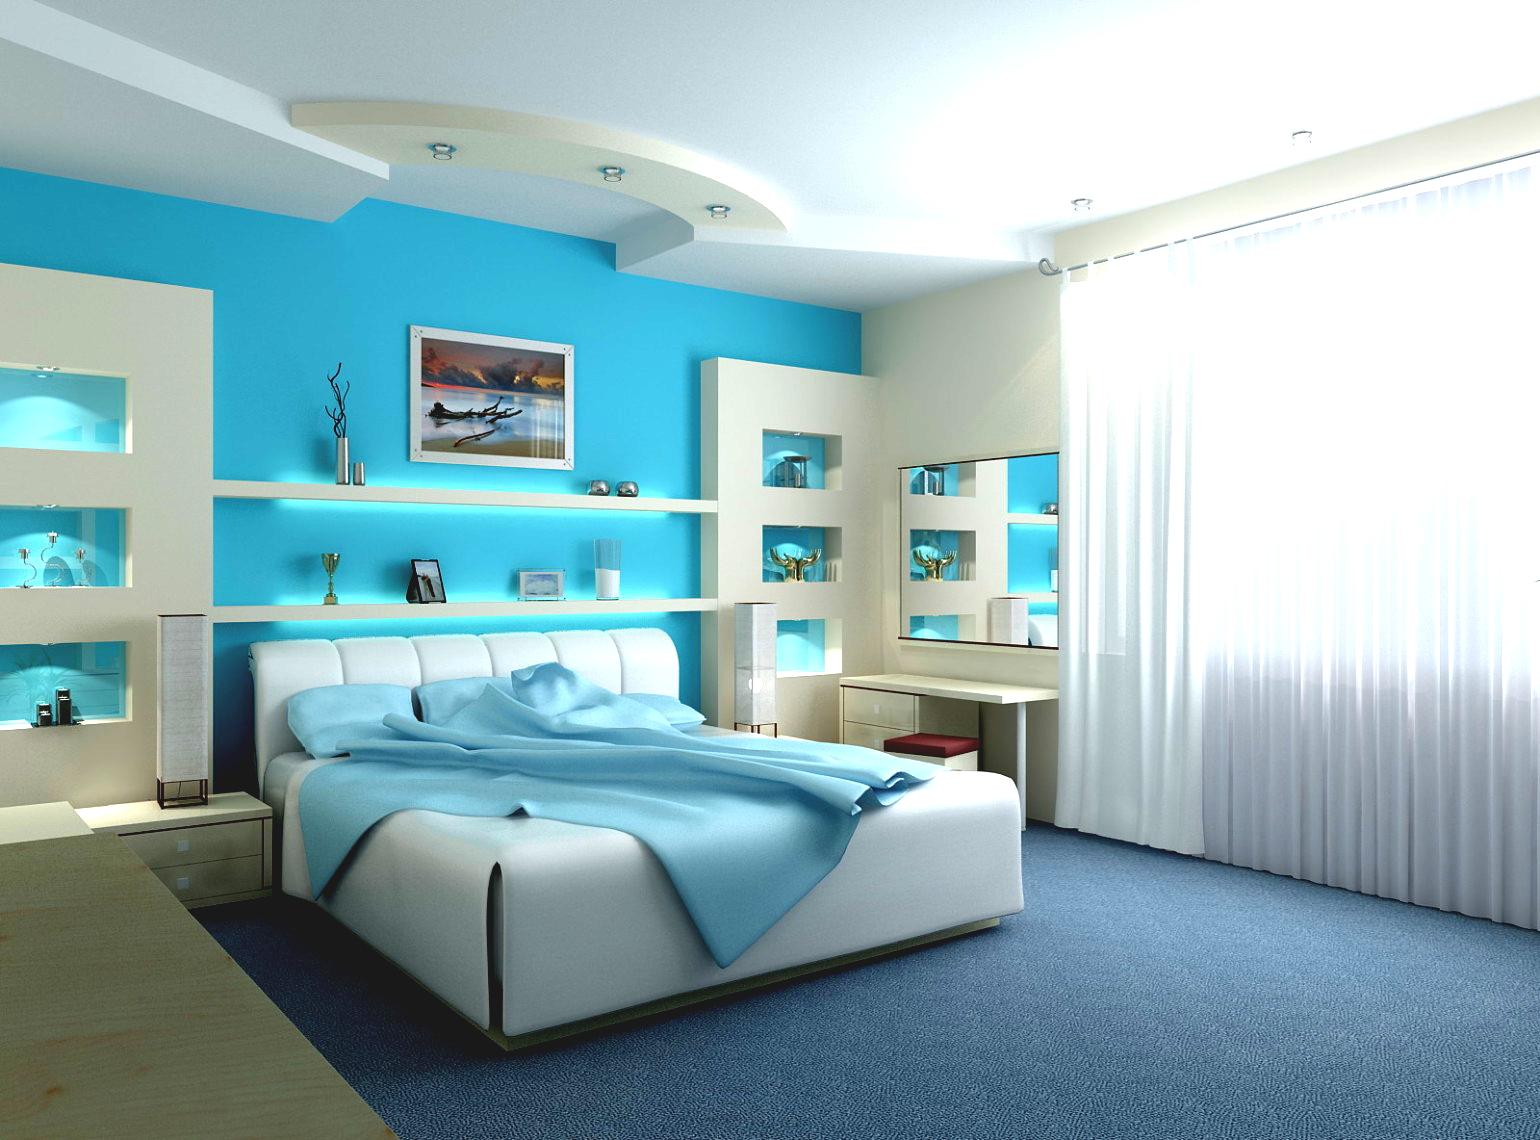 master bedroom Colors Ideas For Your Master Bedroom Decór bedroom blue color for 005 to image schemes bedroomsblue colored bedrooms